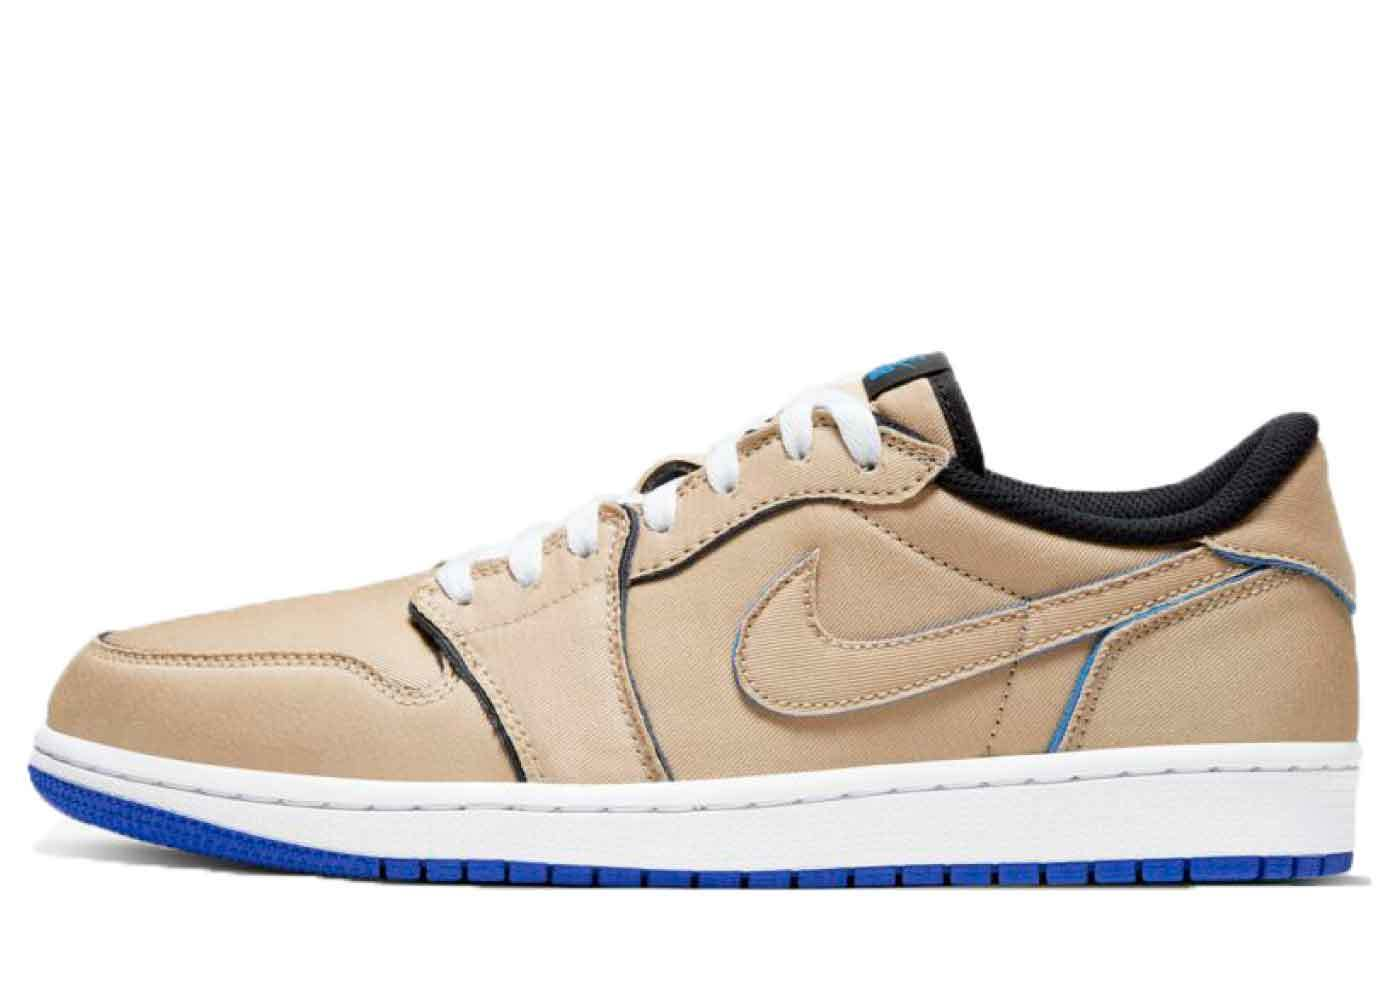 Nike Air Jordan 1 Low SB Desert Oreの写真